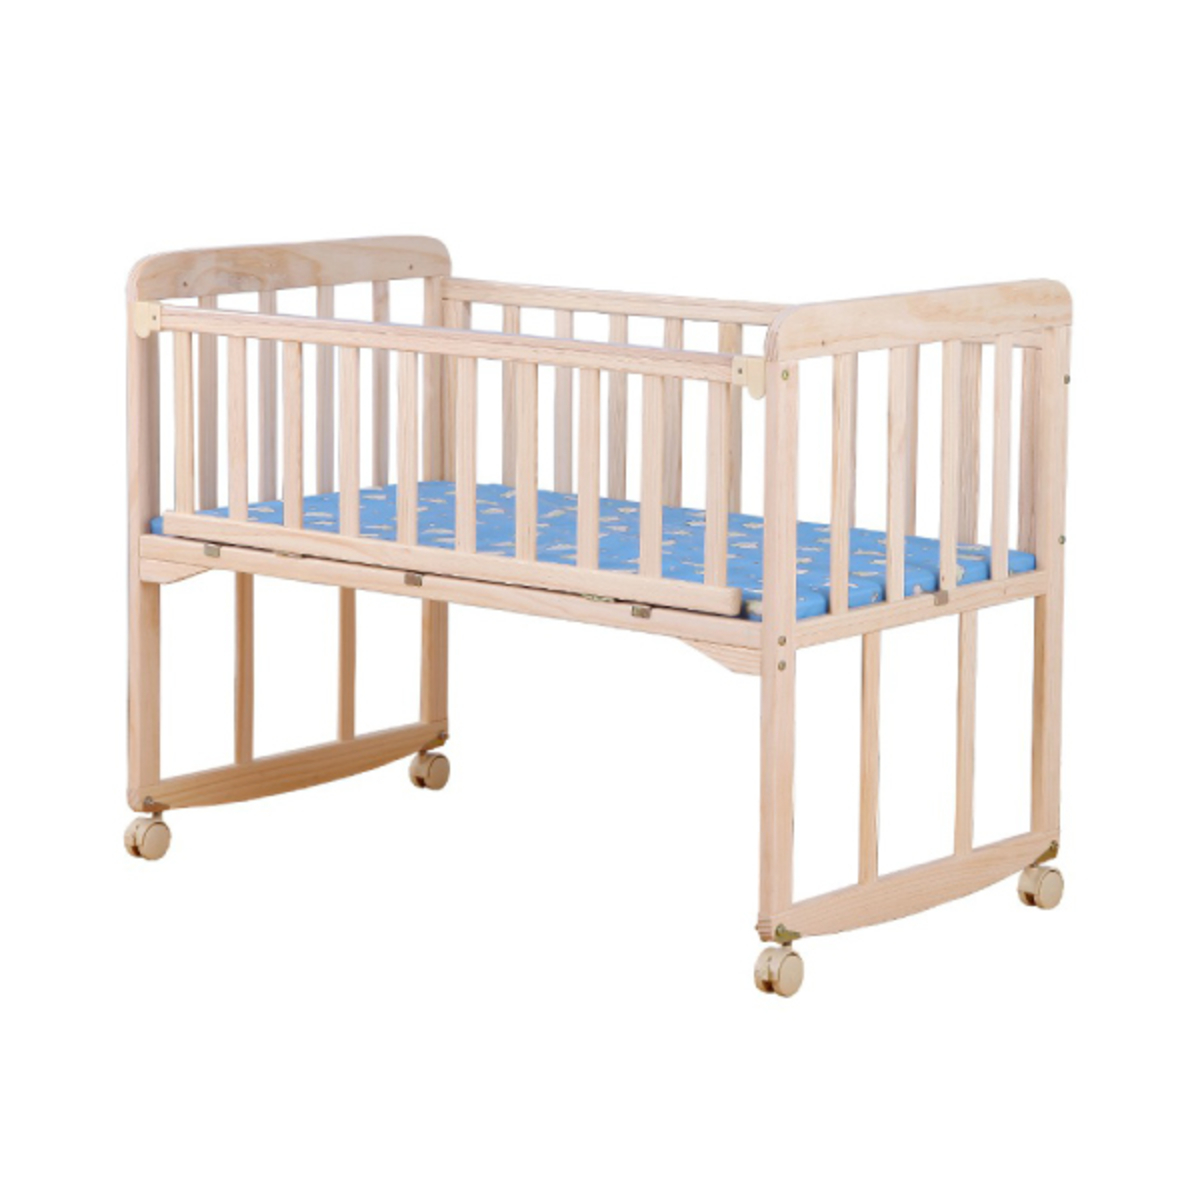 Wooden Baby Cradle Cots Bed Go Shop